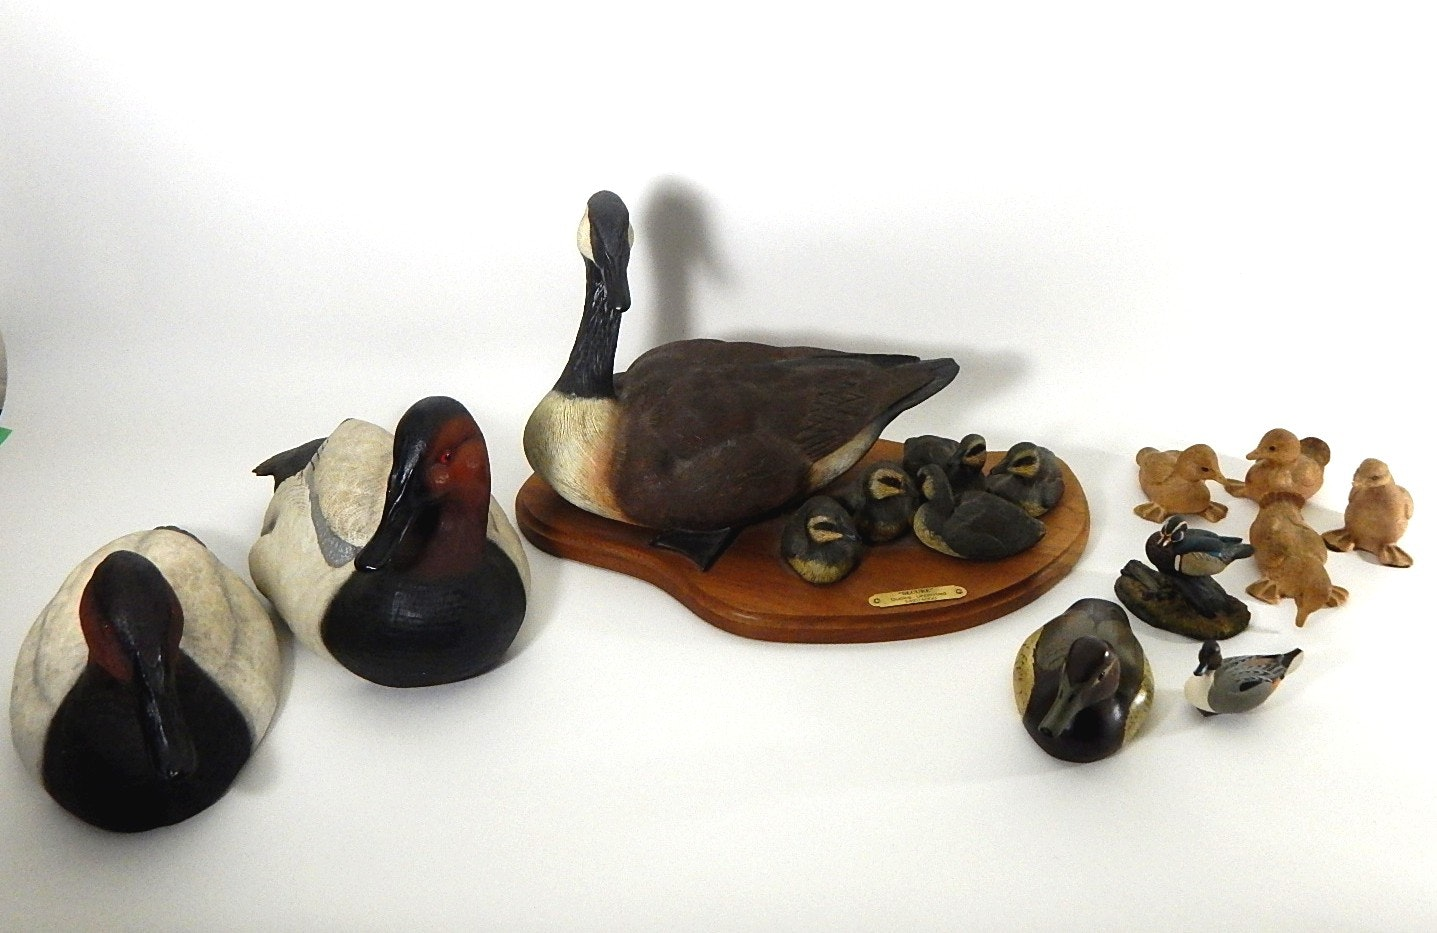 Ducks Unlimited Decoys, Duck Print, and More